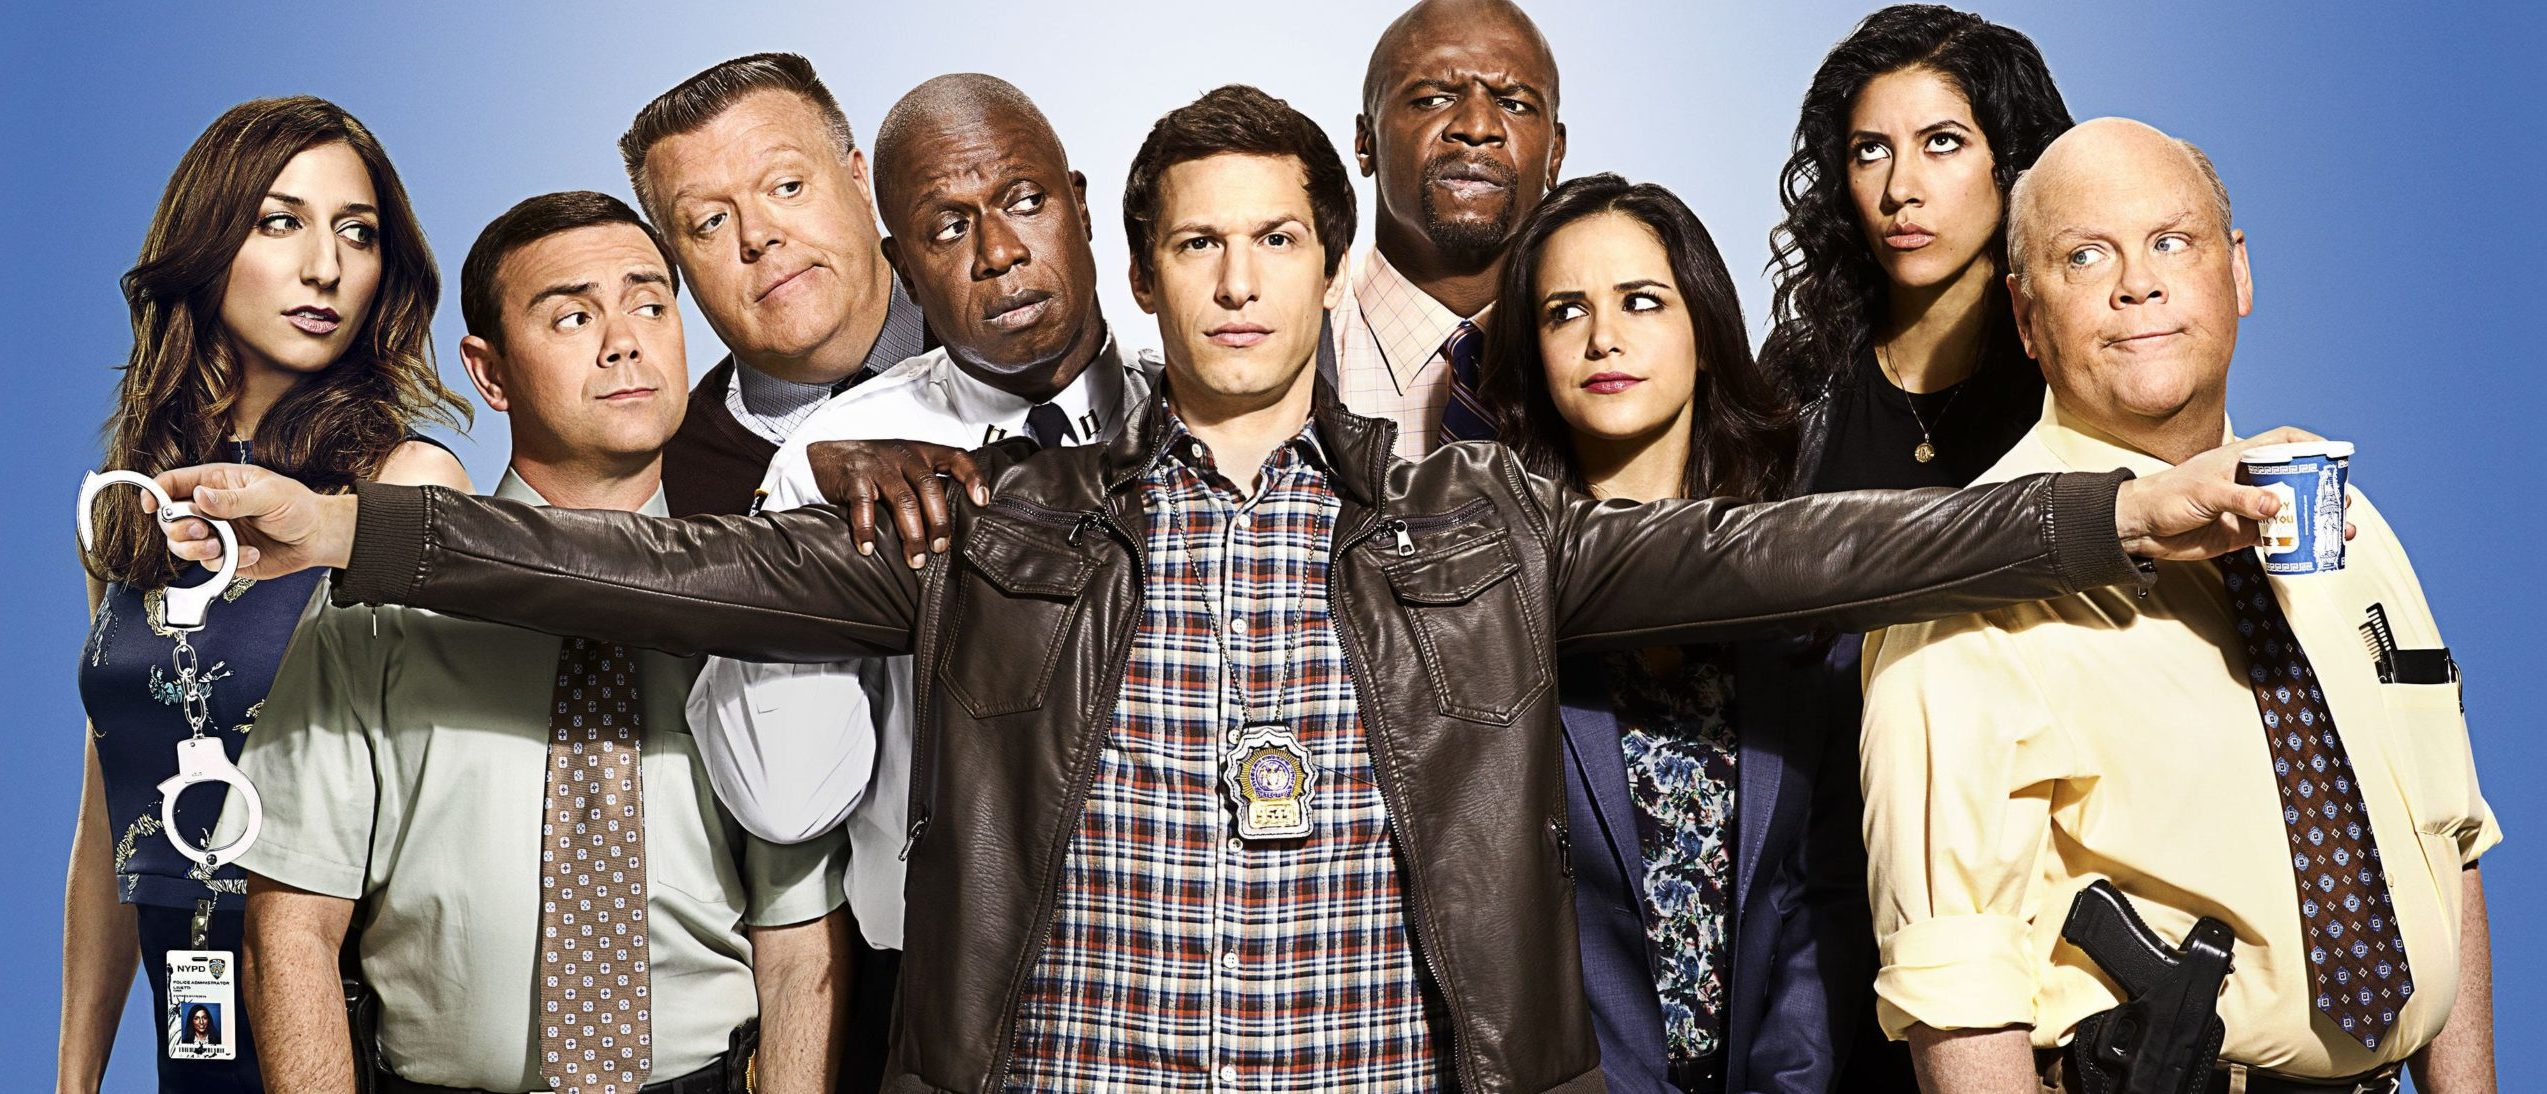 Brooklyn Nine Nine Season 6 Release Date Netflix UK